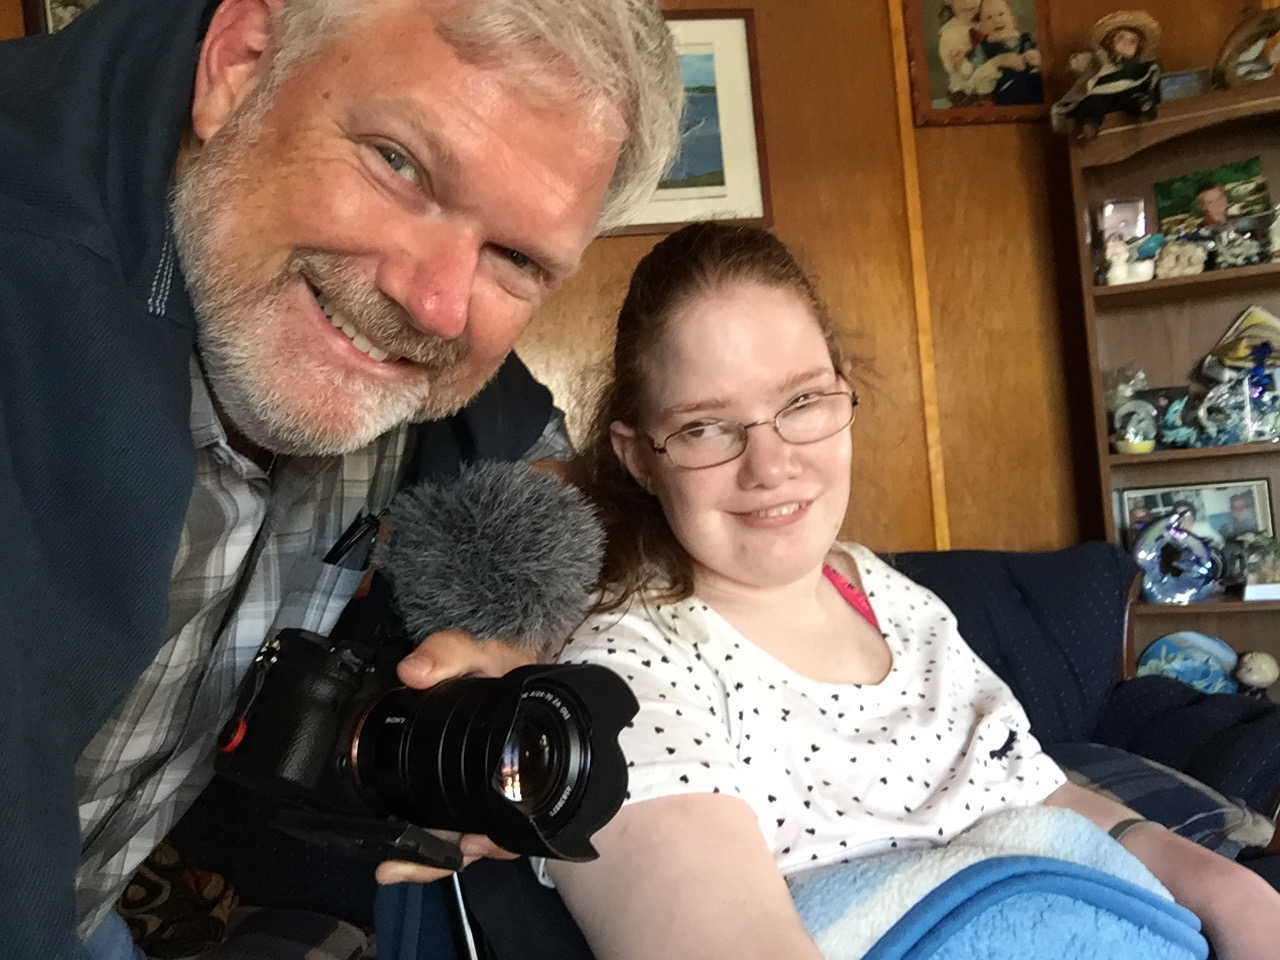 Kevin with Candice Lewis, whose doctor suggested Medical Aid in Dying, in NFLD, Canada